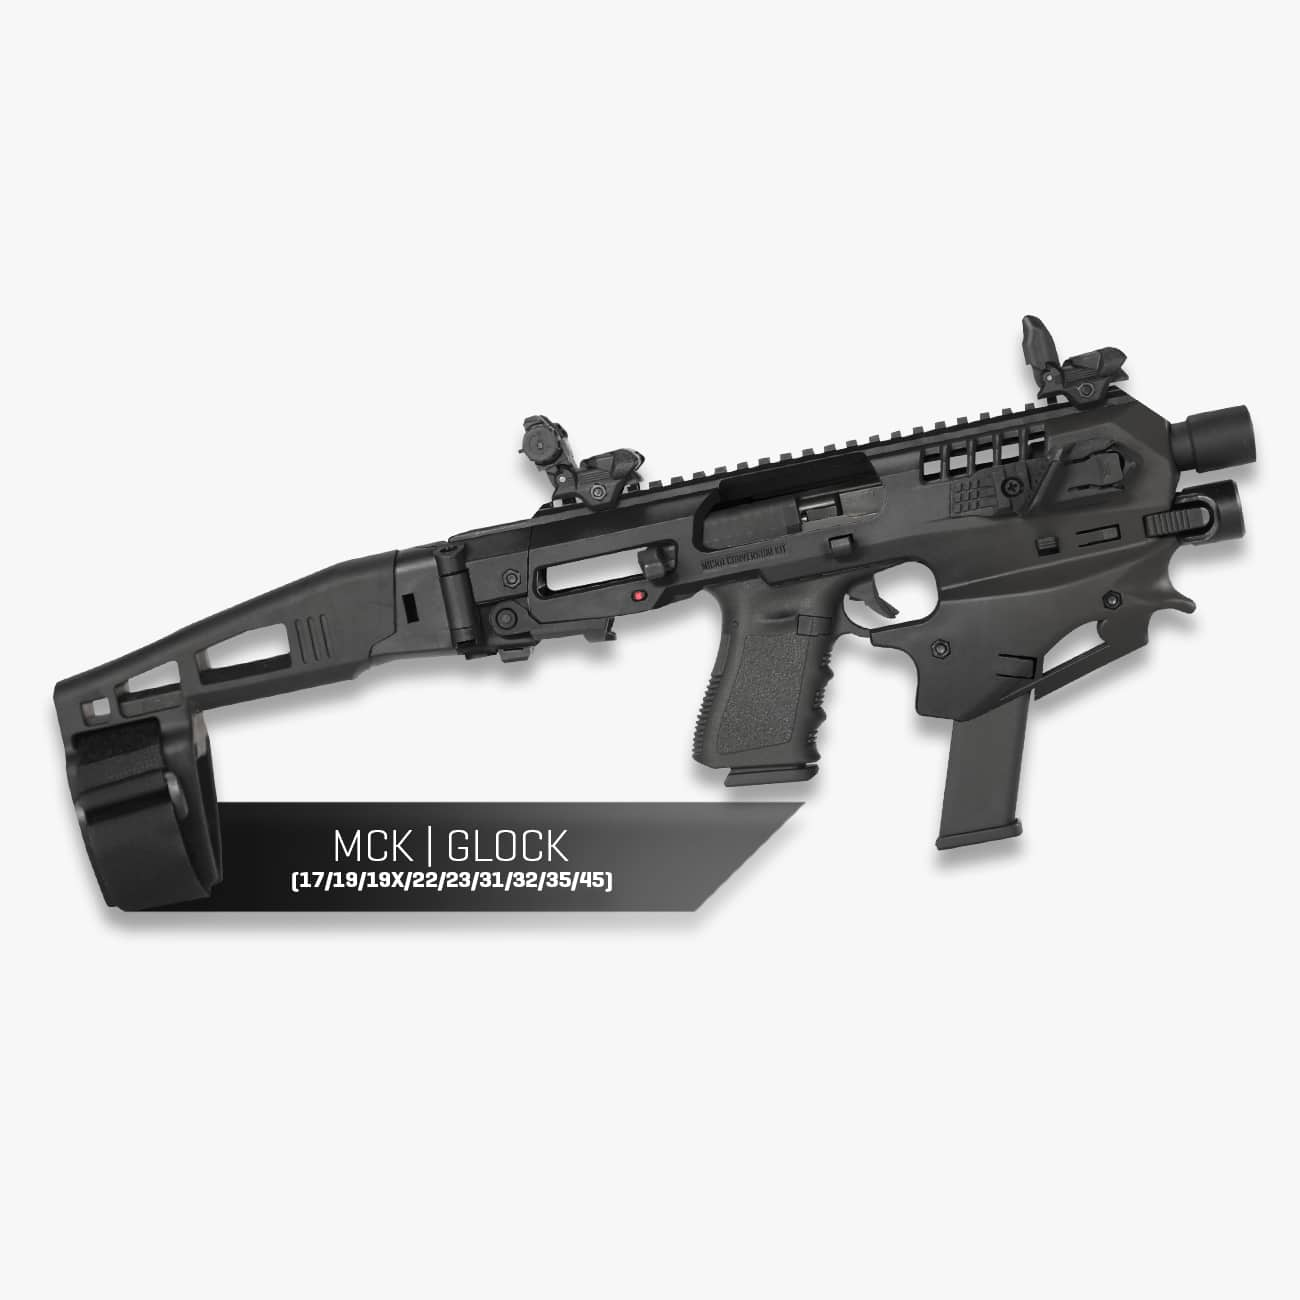 MCK | Micro Conversion Kit (Glock 17/19/19X/22/23/31/32/45)